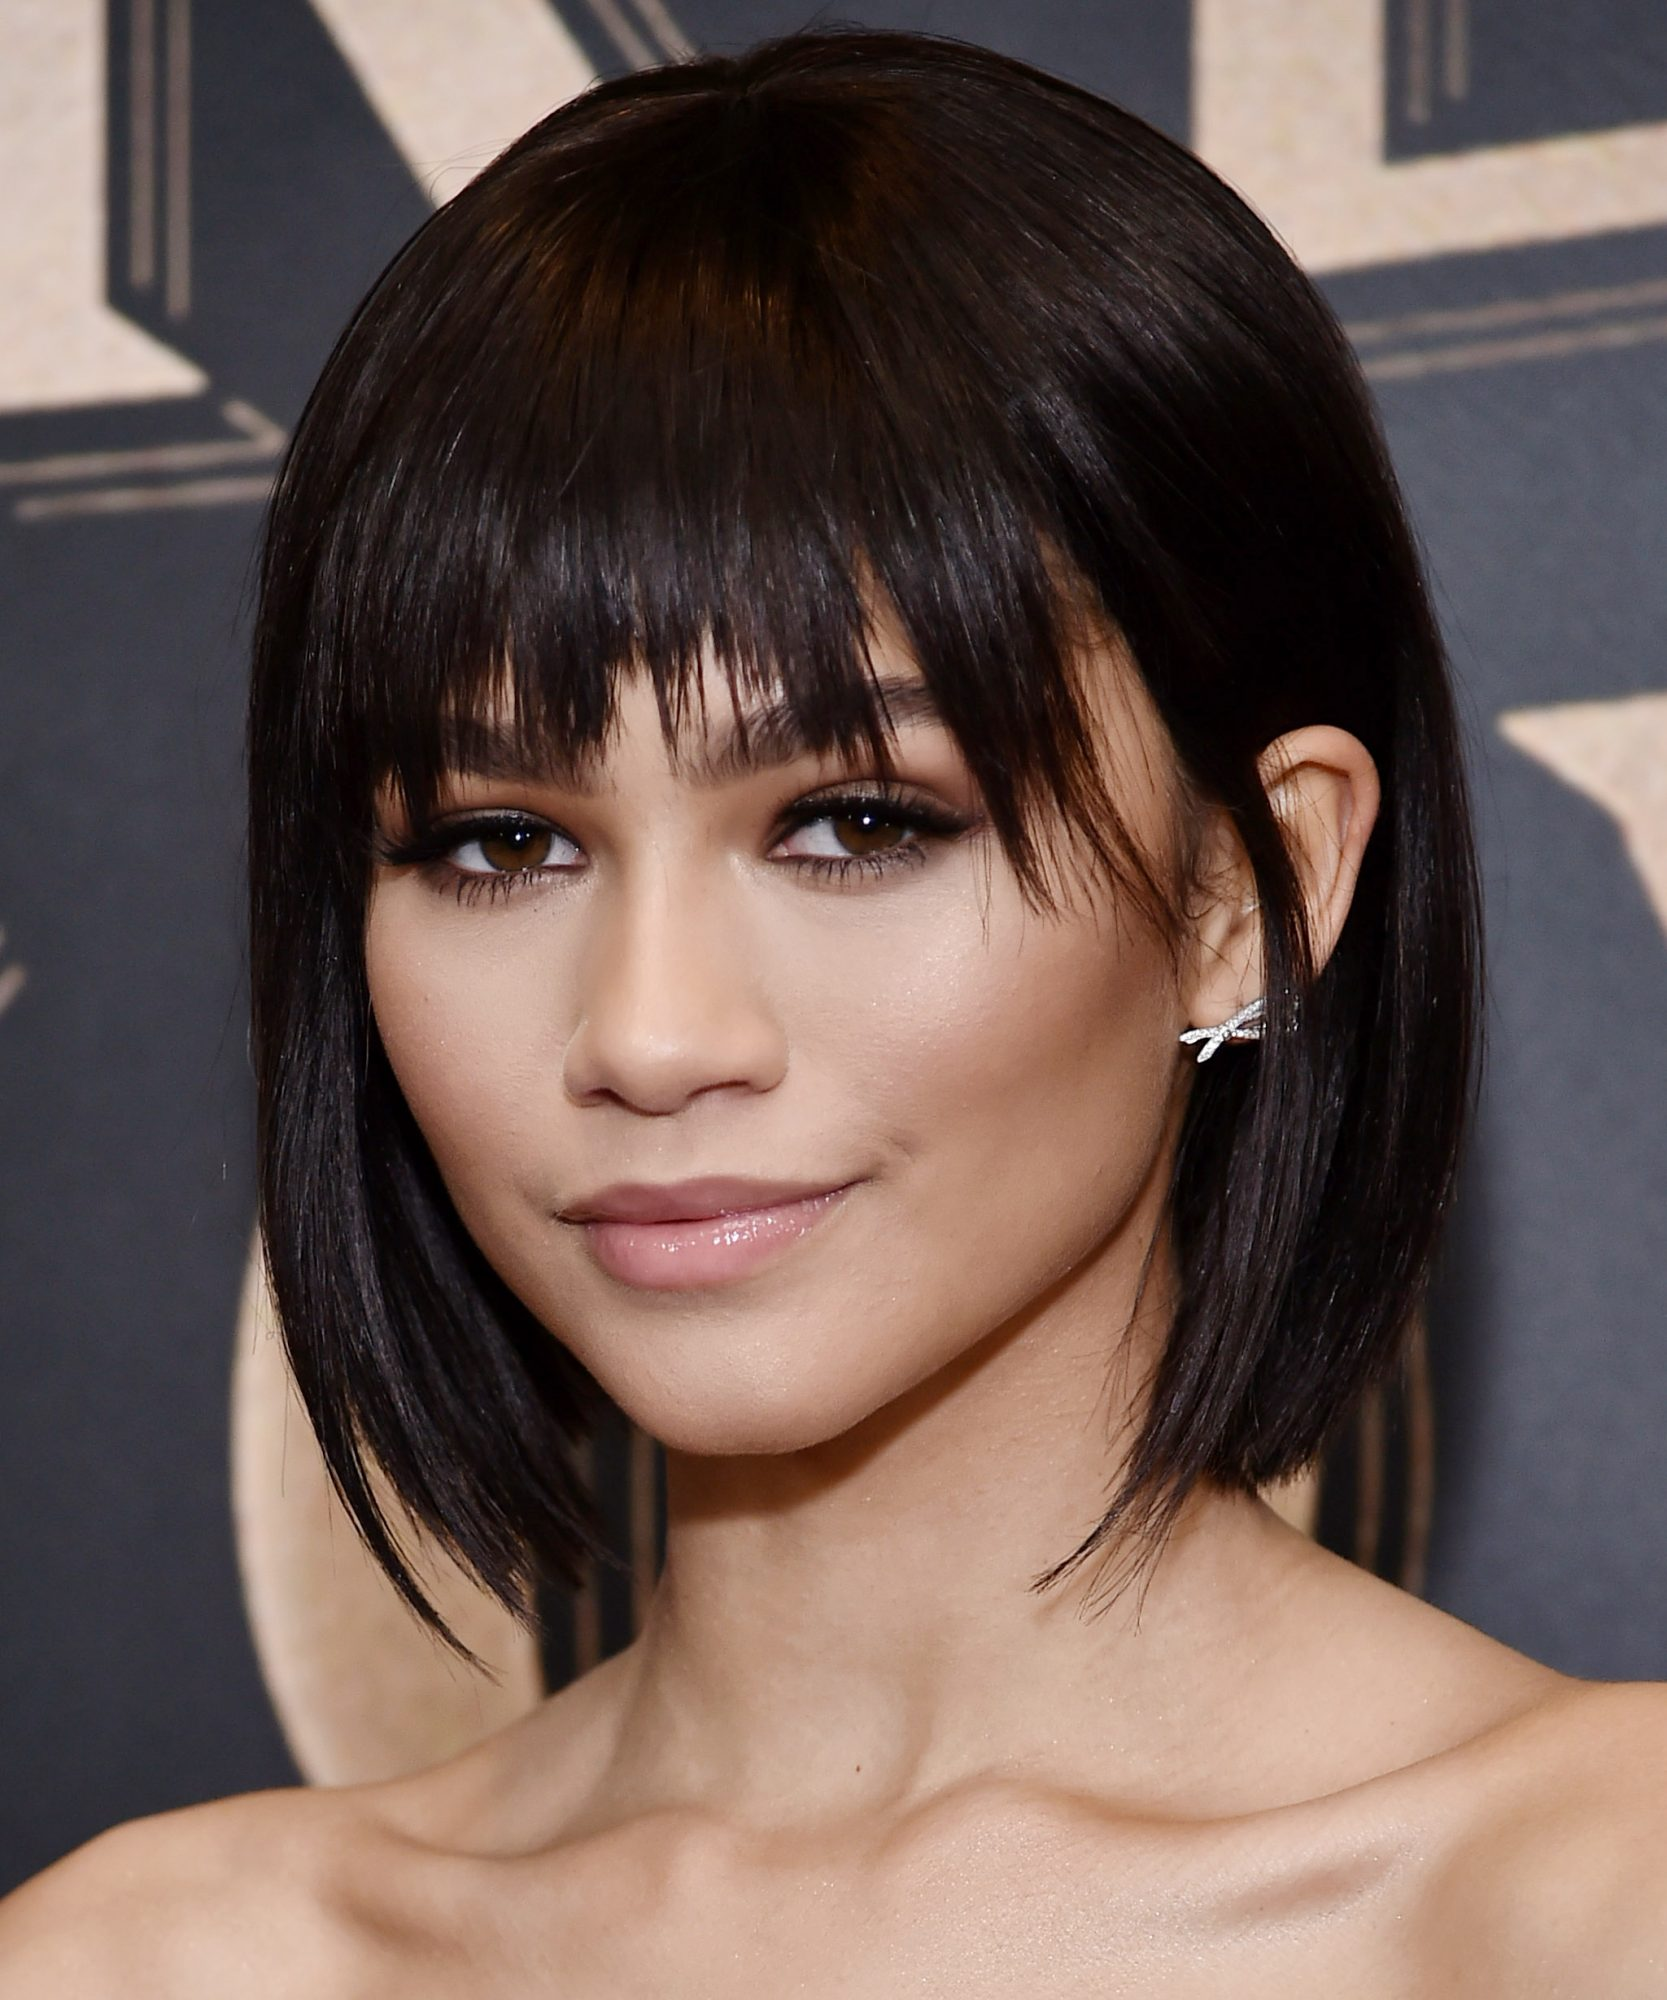 Zendaya Short Hairstyles With Bangs to Try